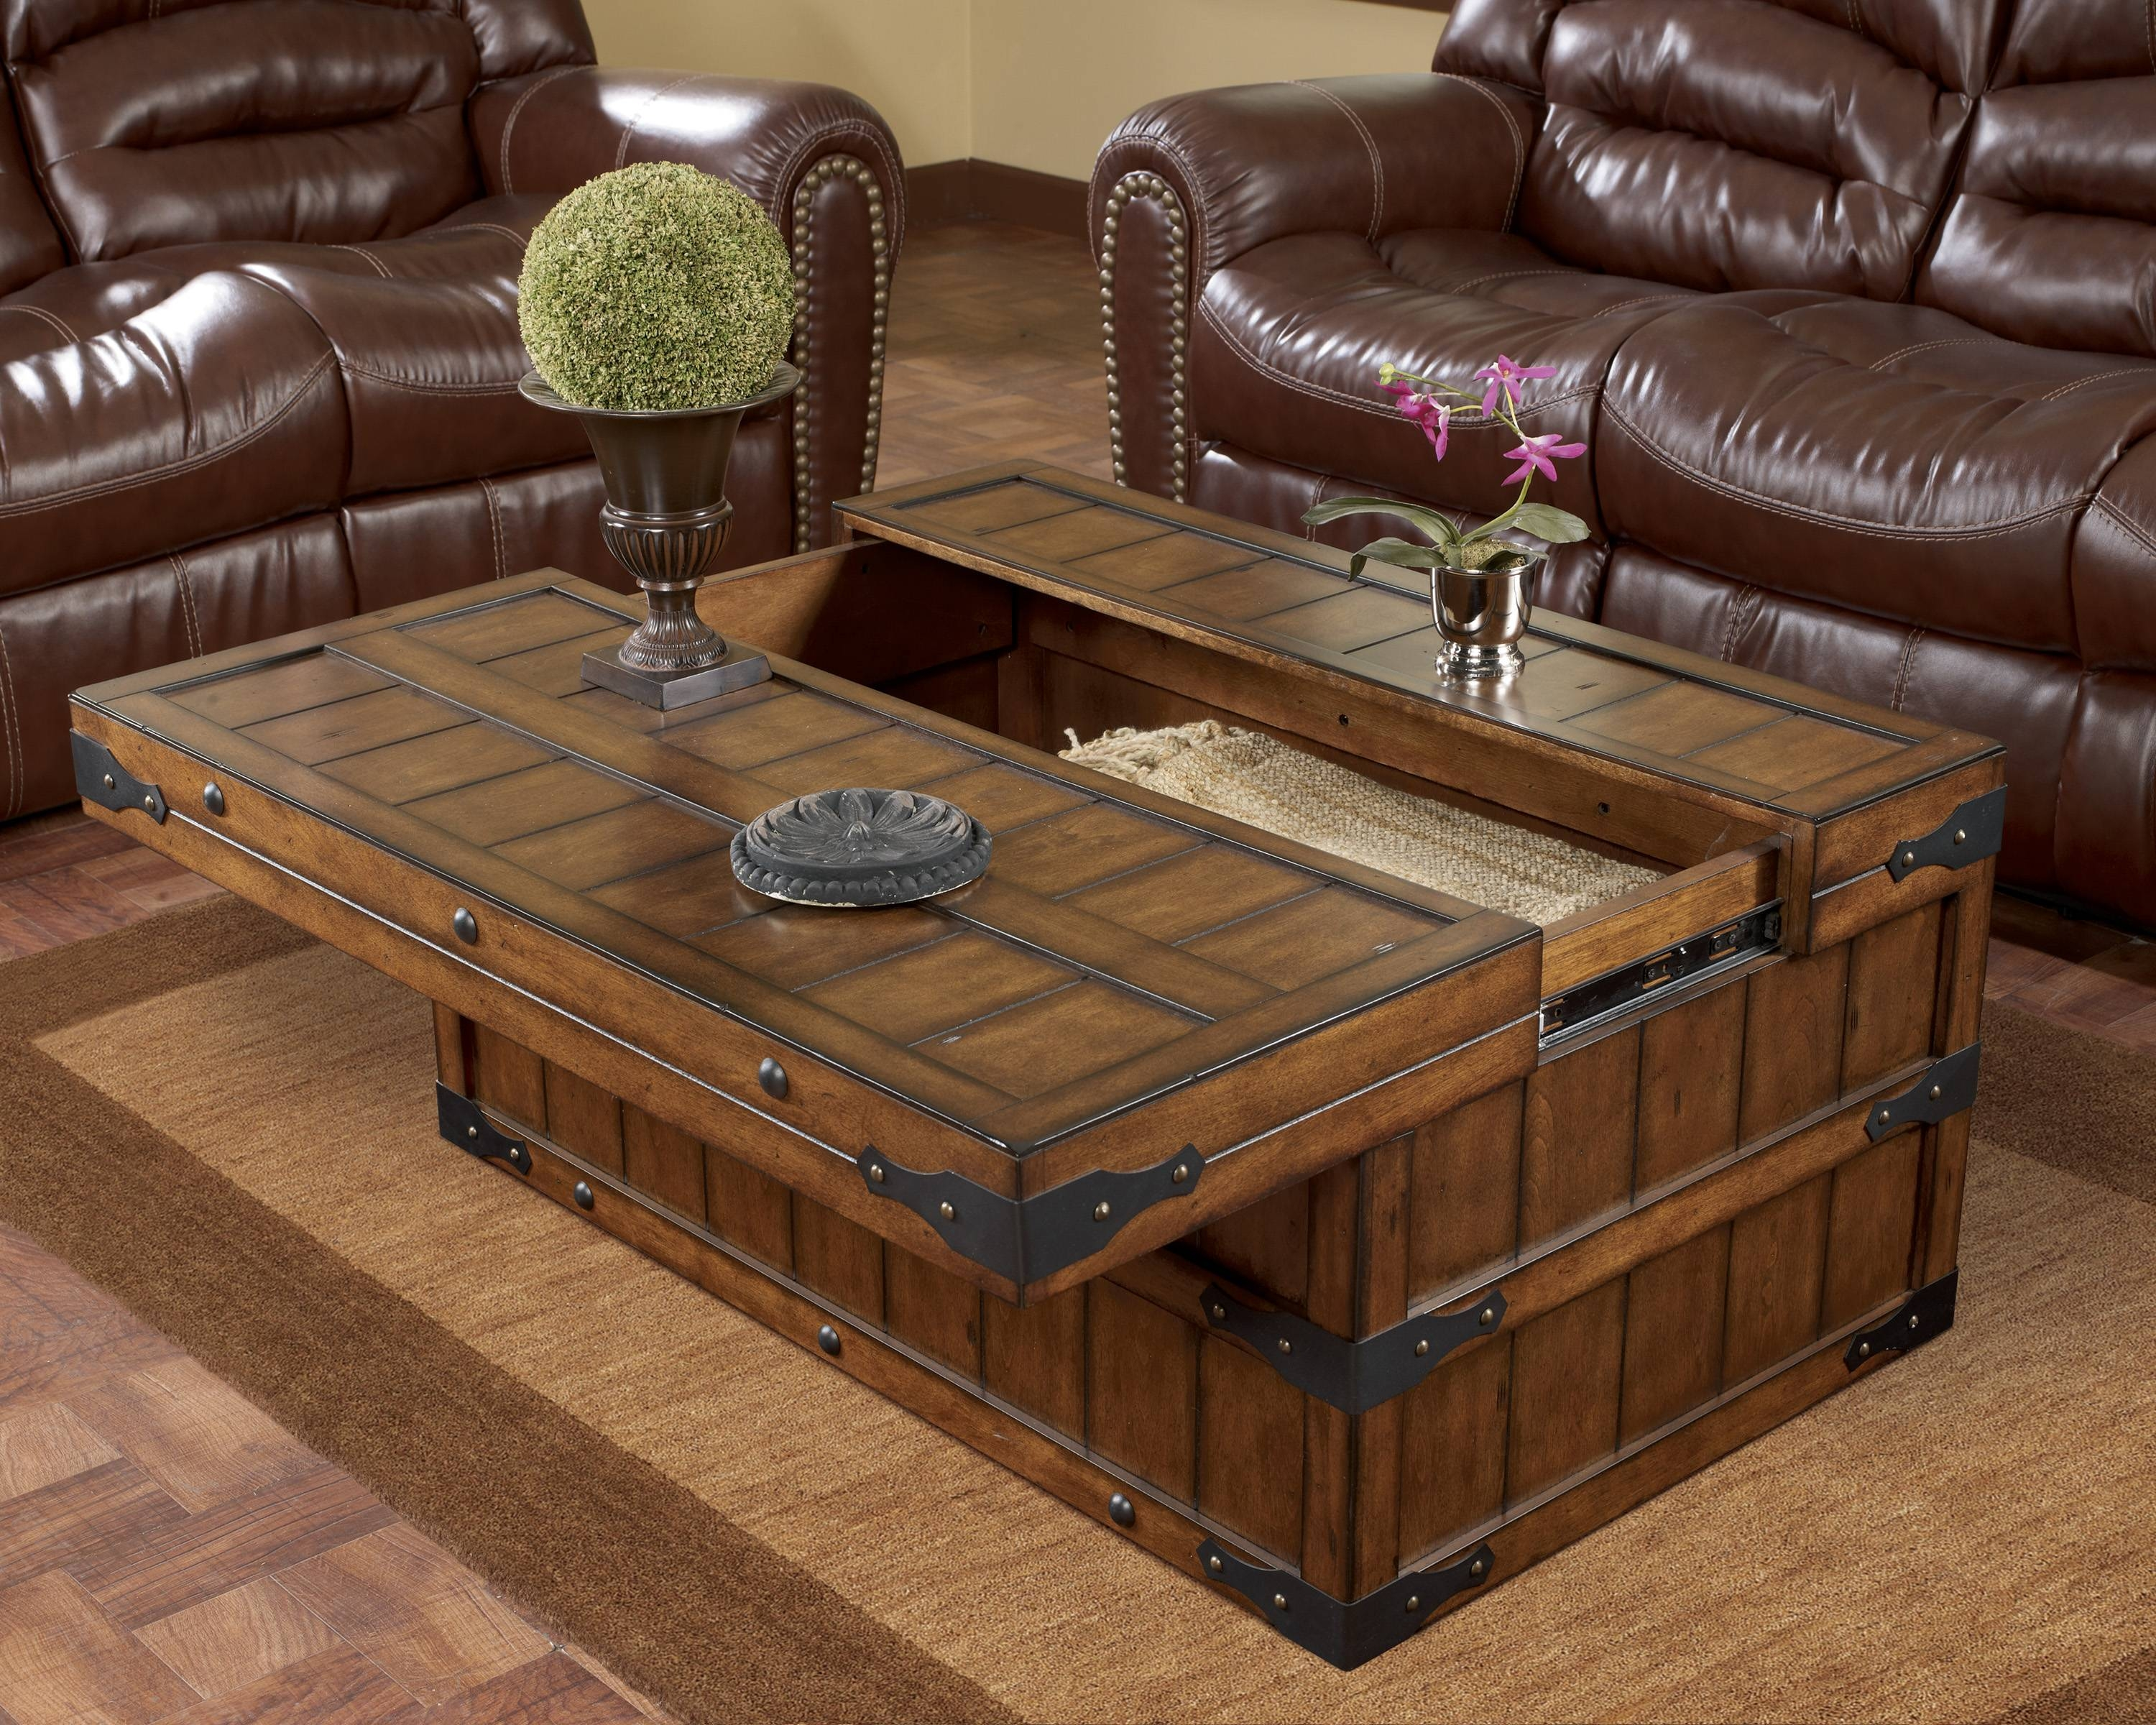 Furniture: Unique Rustic Coffee Table For Elegant Living Room with regard to Wooden Coffee Tables With Storage (Image 22 of 30)